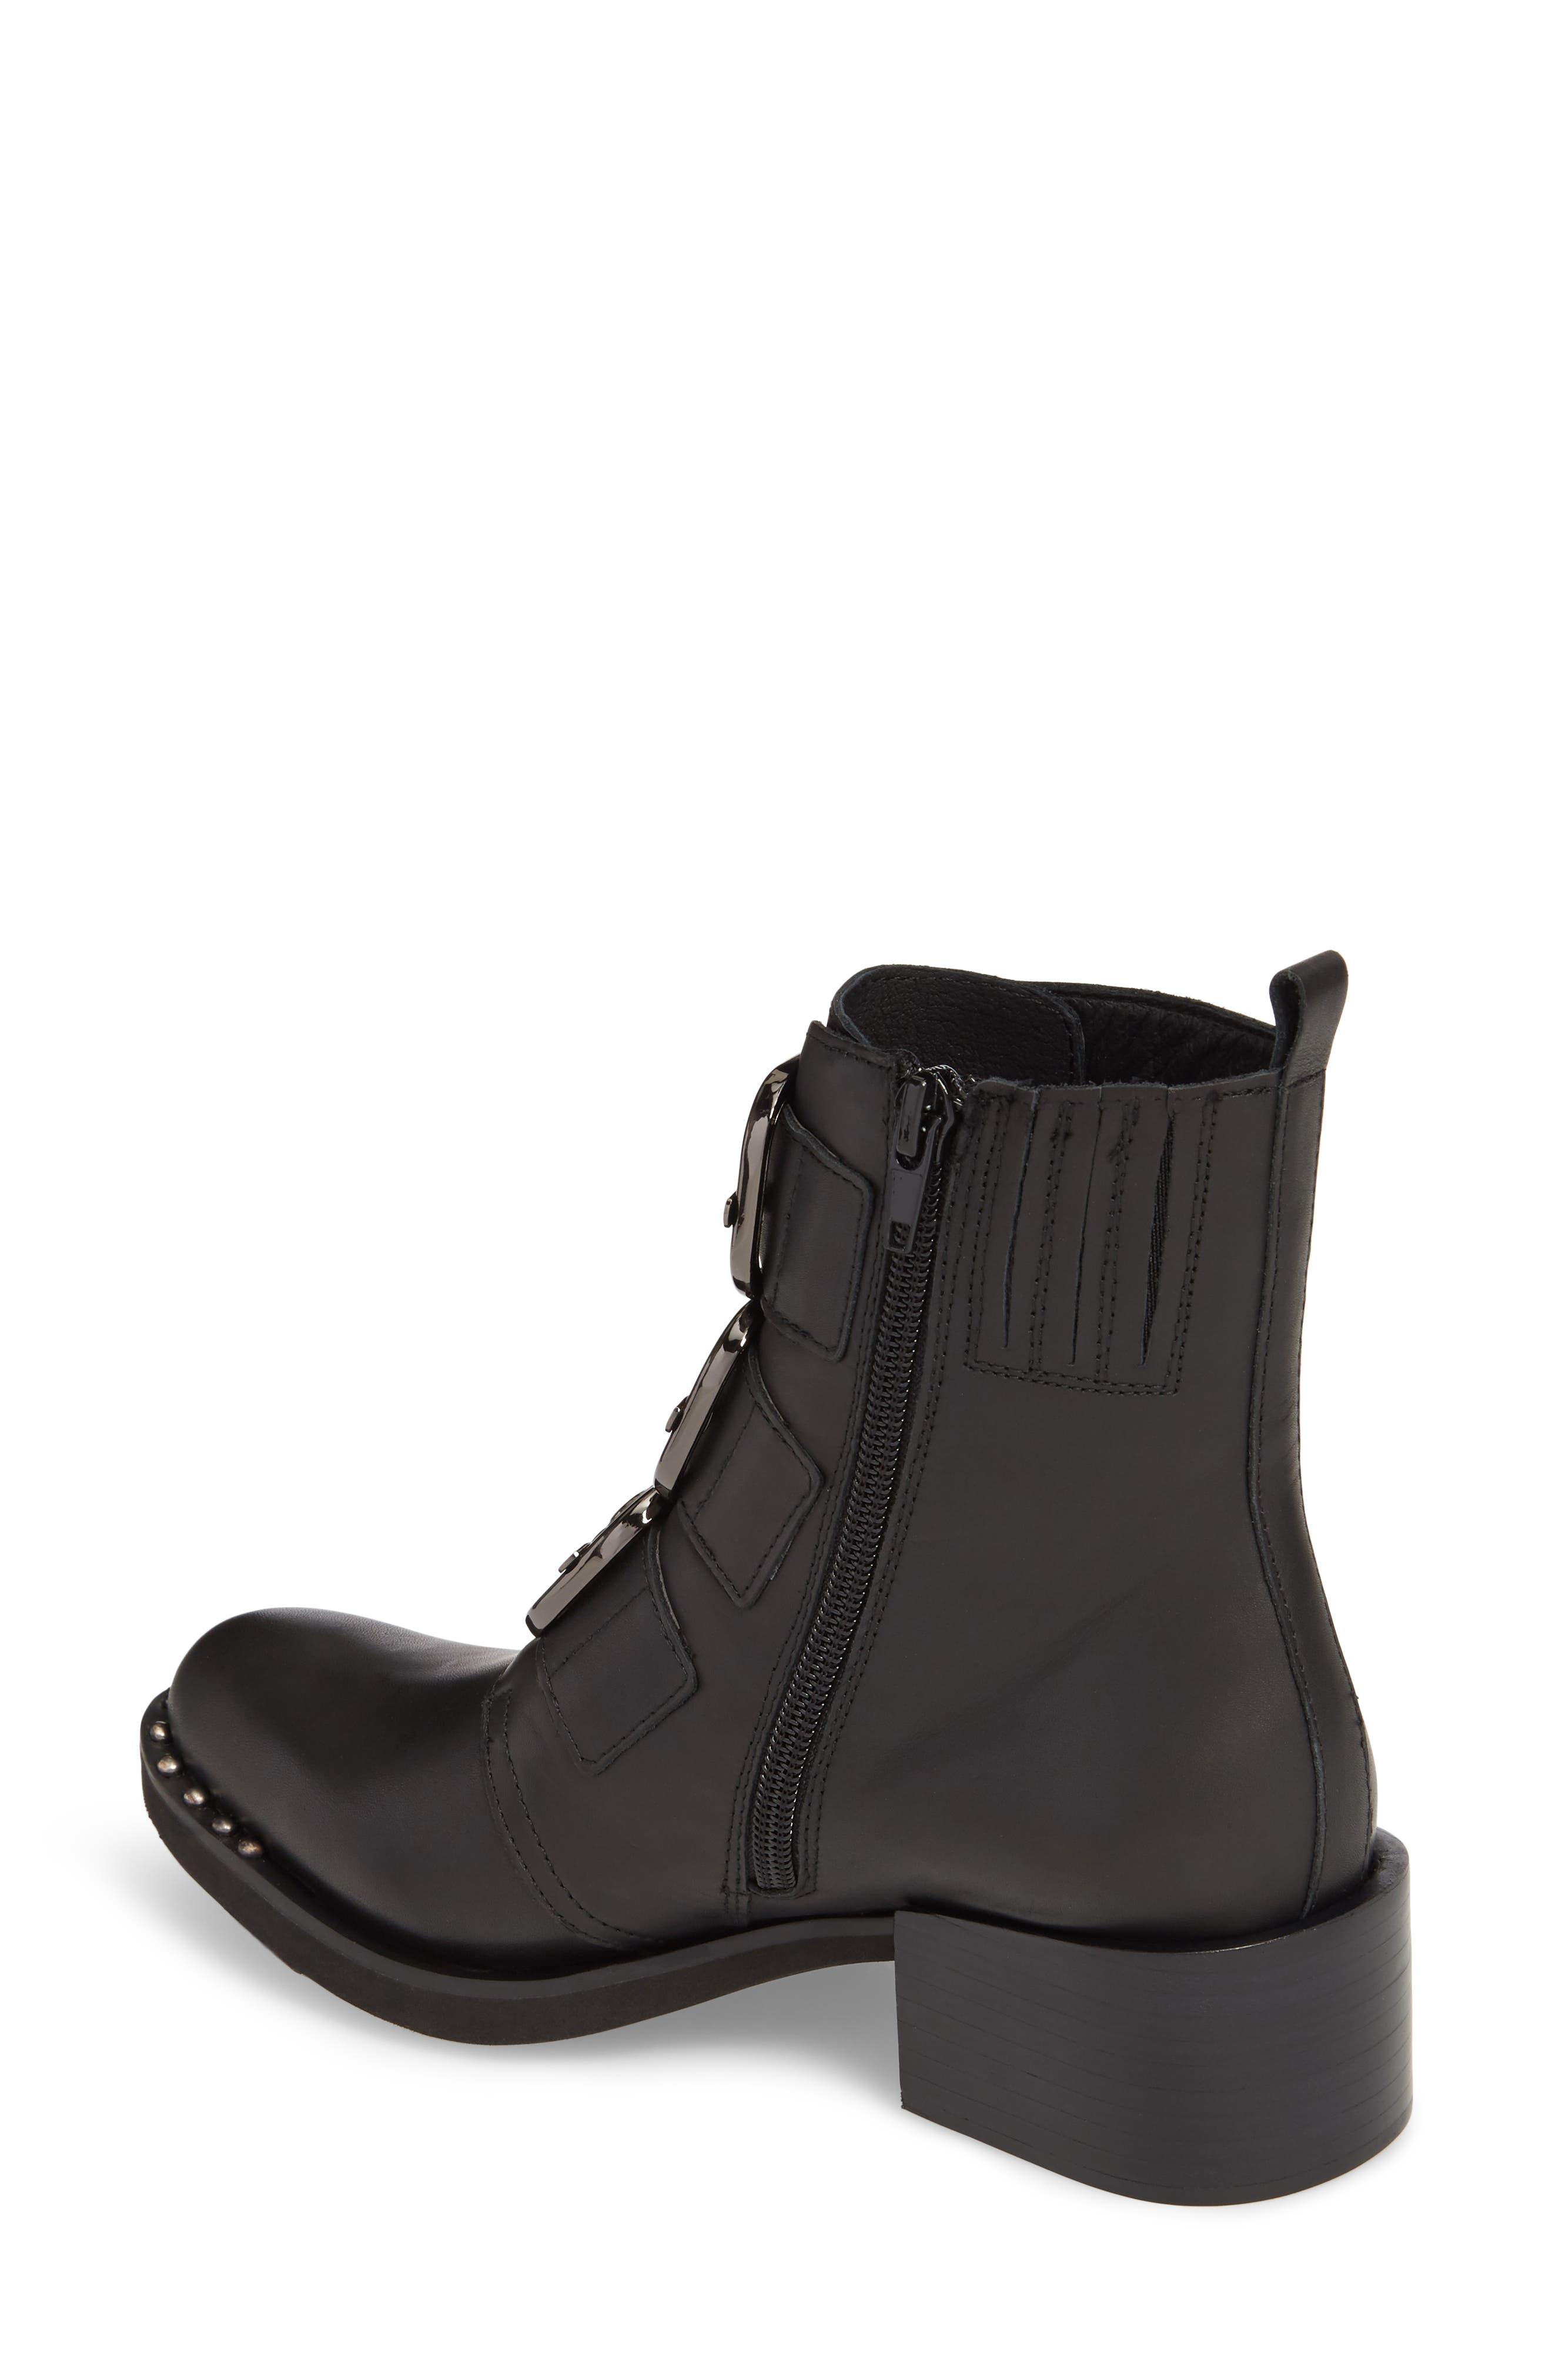 Todd Buckle Strap Bootie,                             Alternate thumbnail 2, color,                             001